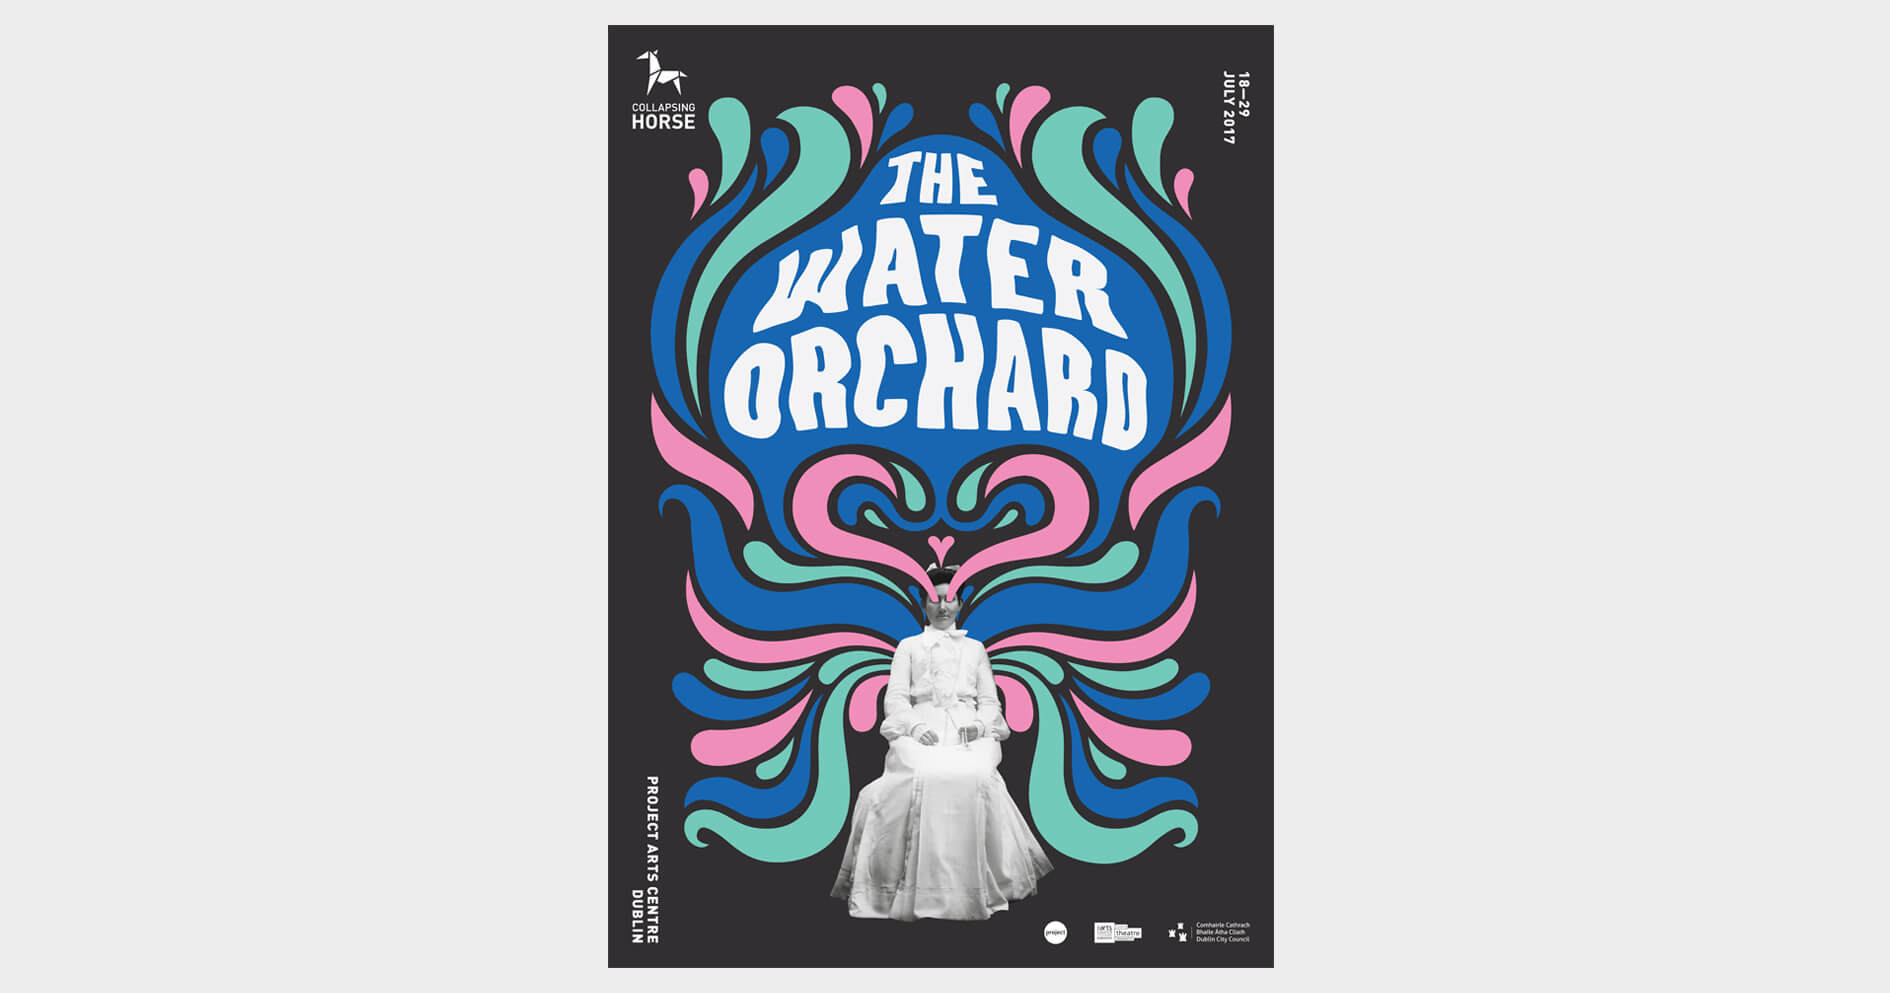 Collapsing Horse / The Water Orchard – Poster